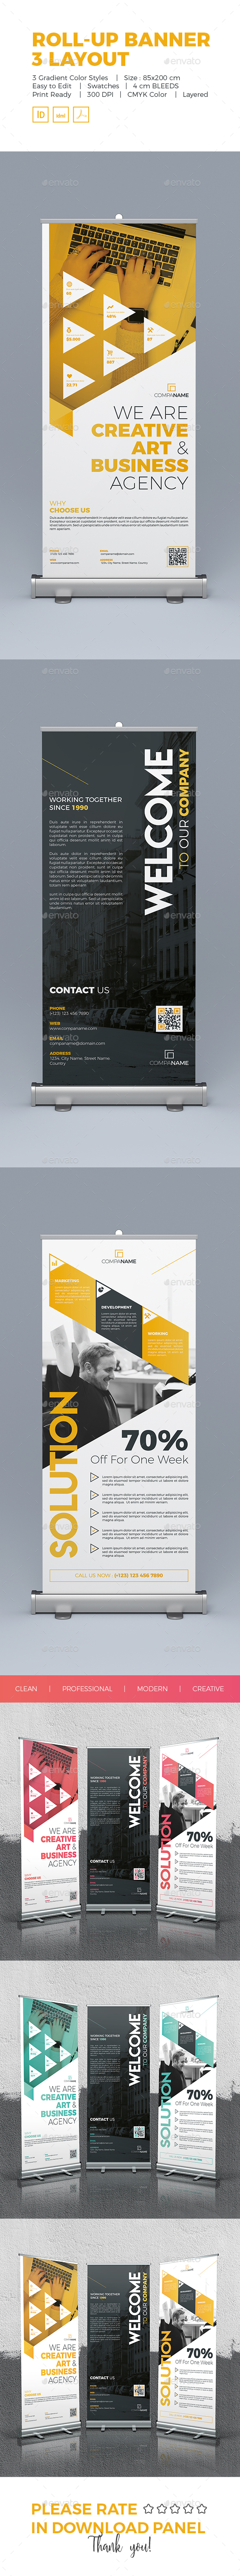 Roll-Up Banner 3 Layout - Signage Print Templates